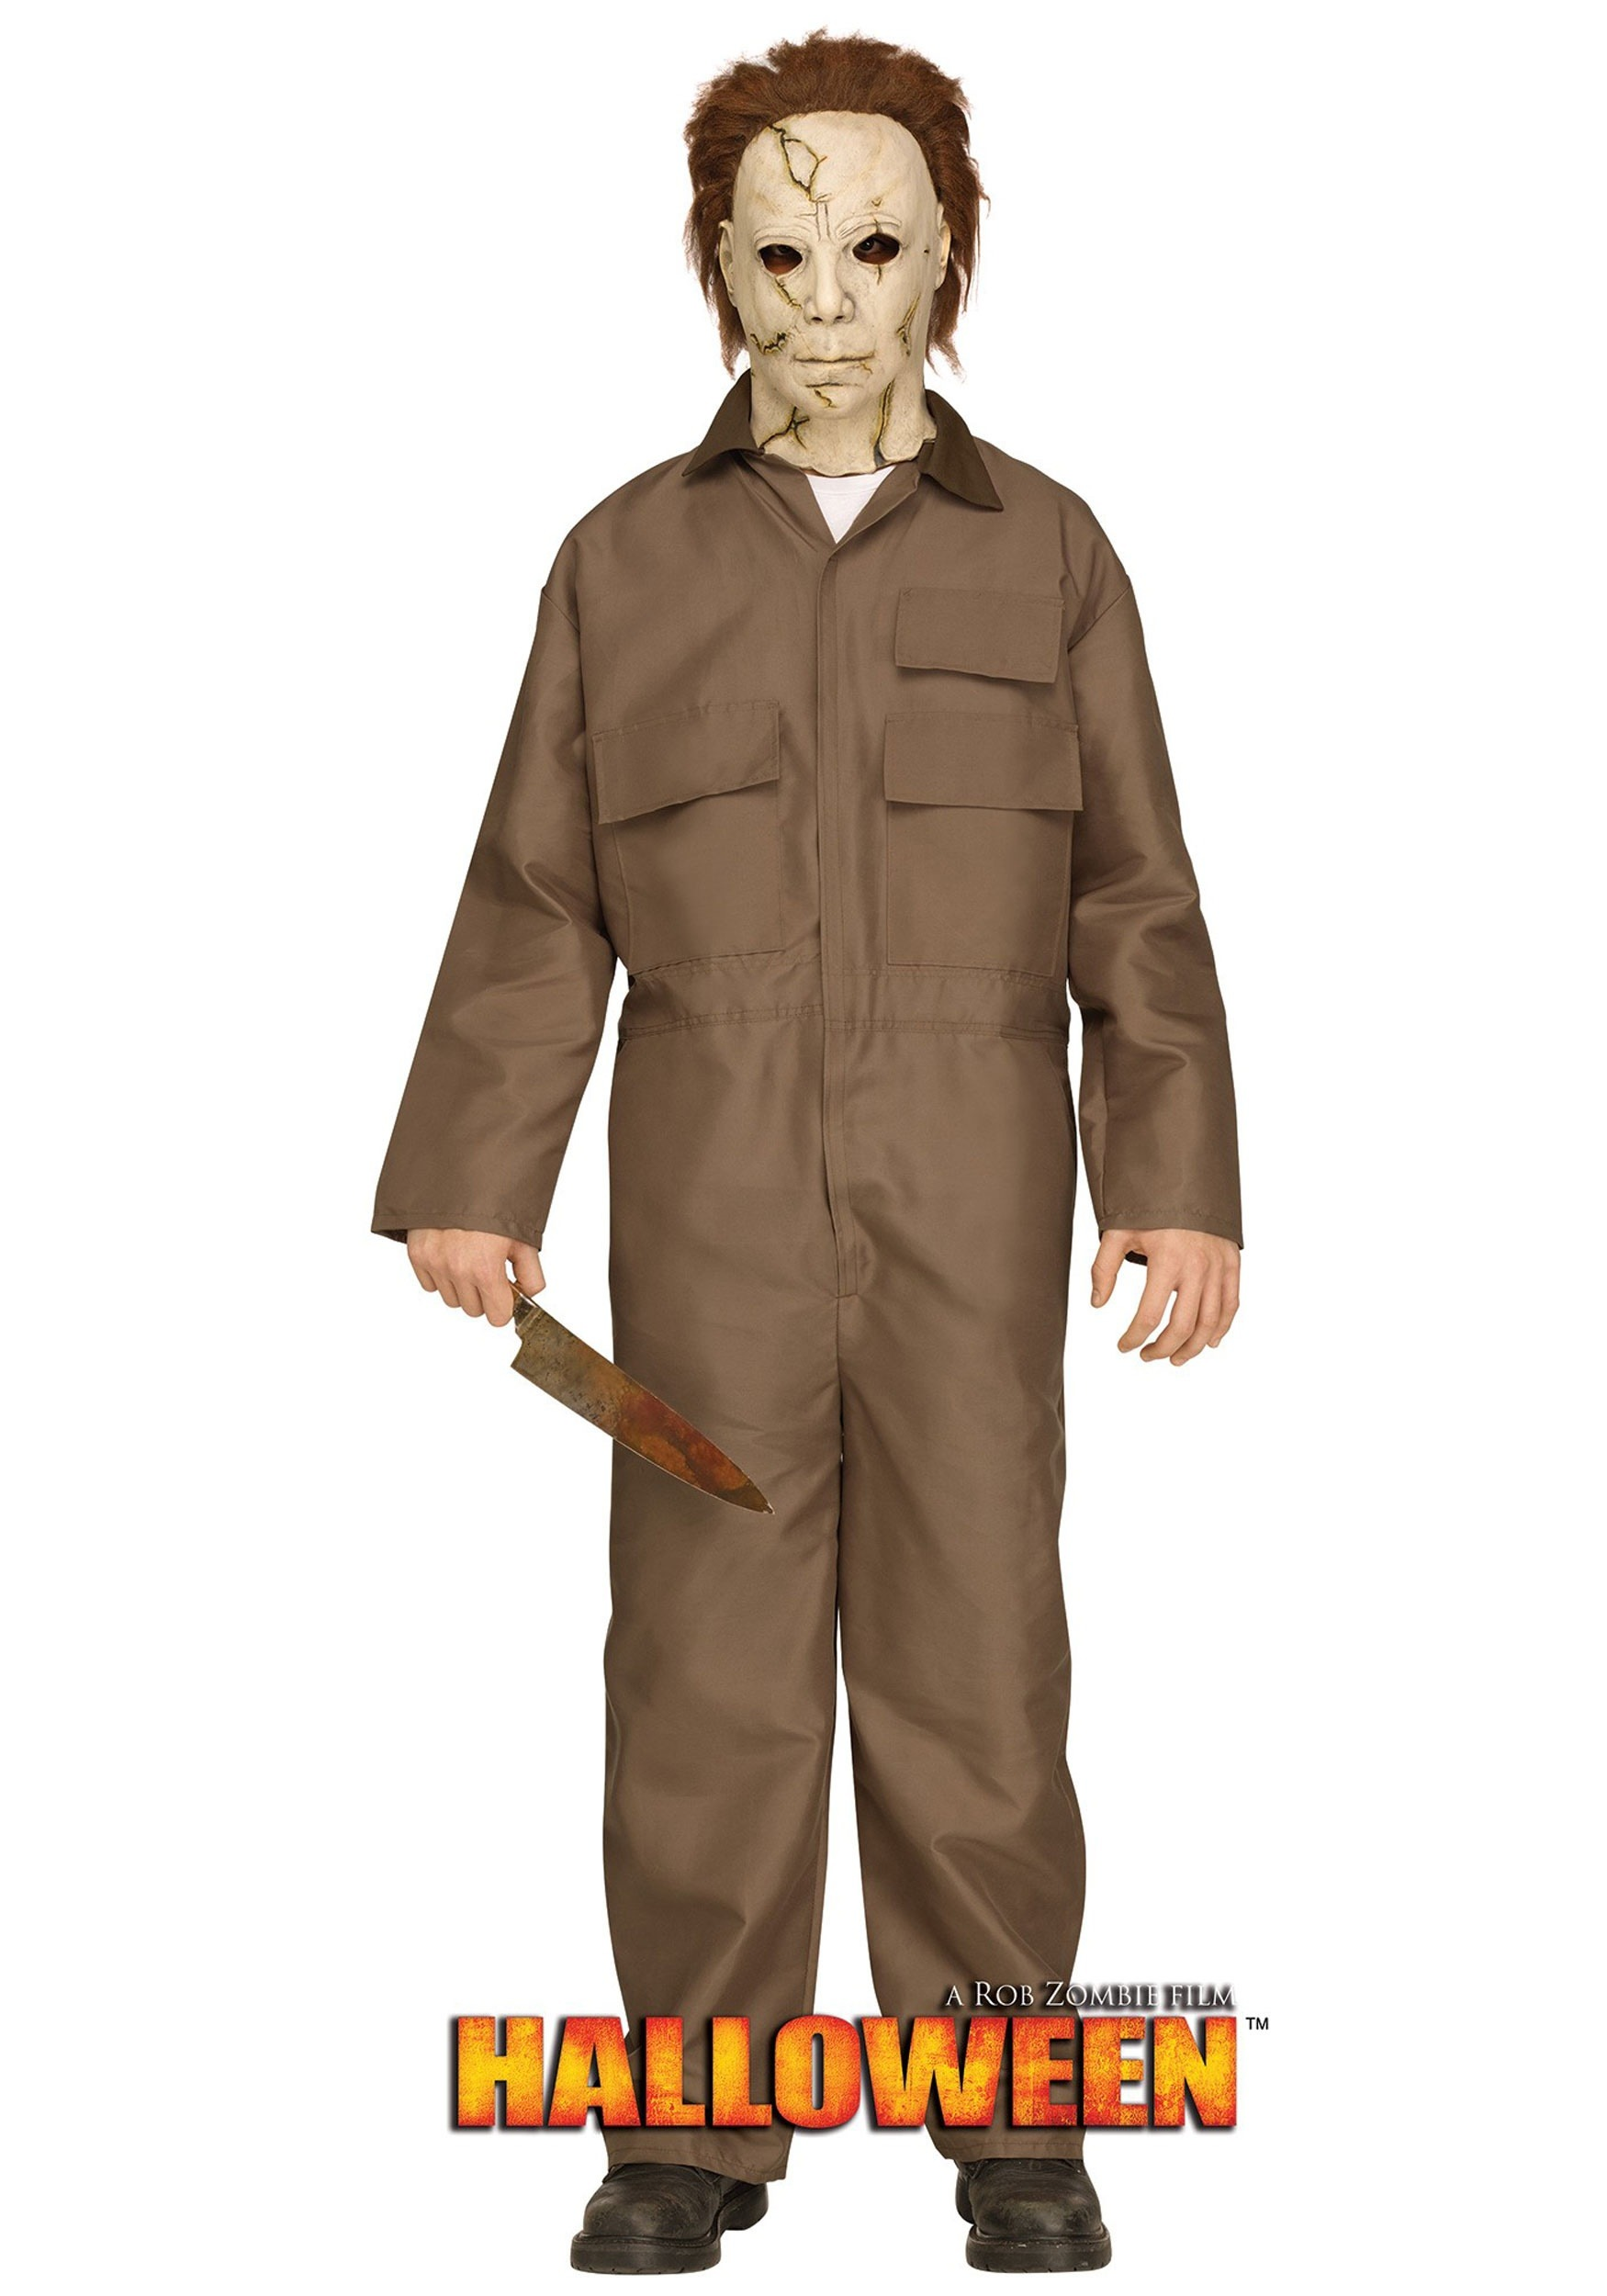 rob zombie halloween michael myers costume for teens